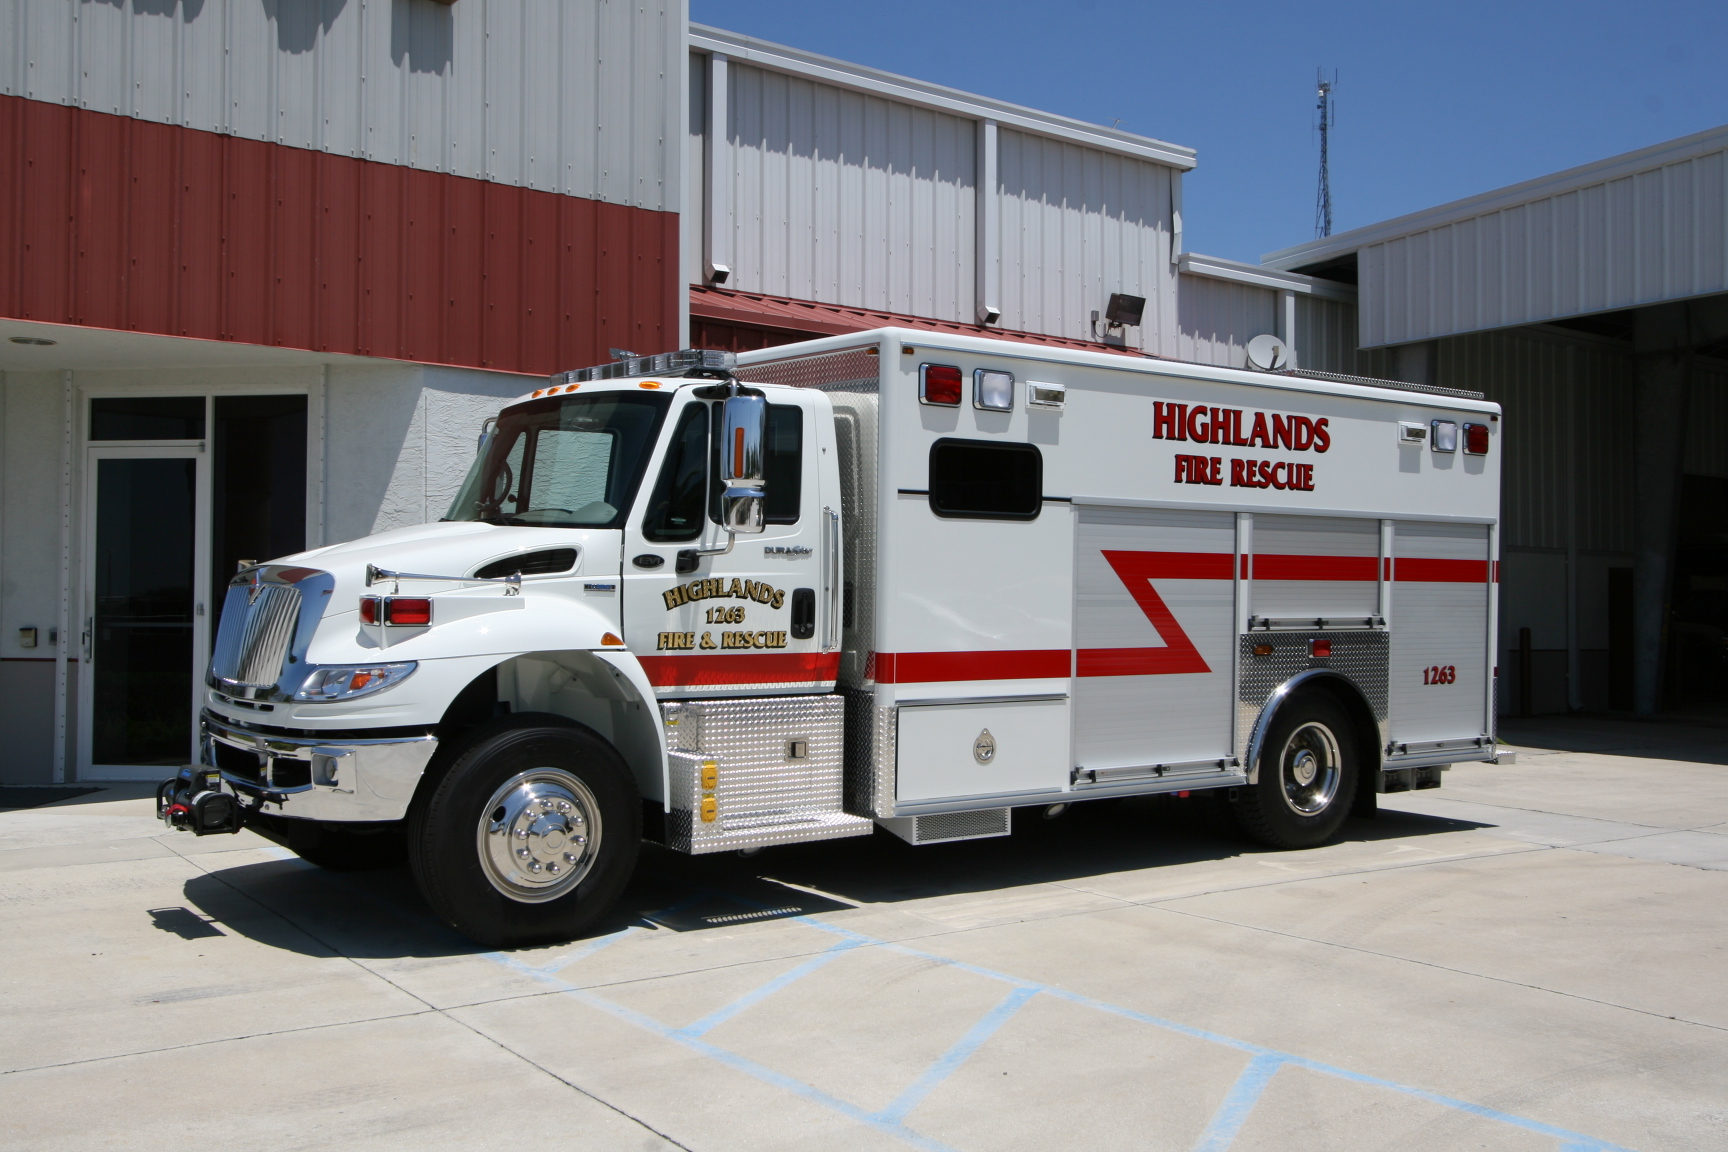 18-Ft. Crew Body Rescue Vehicle